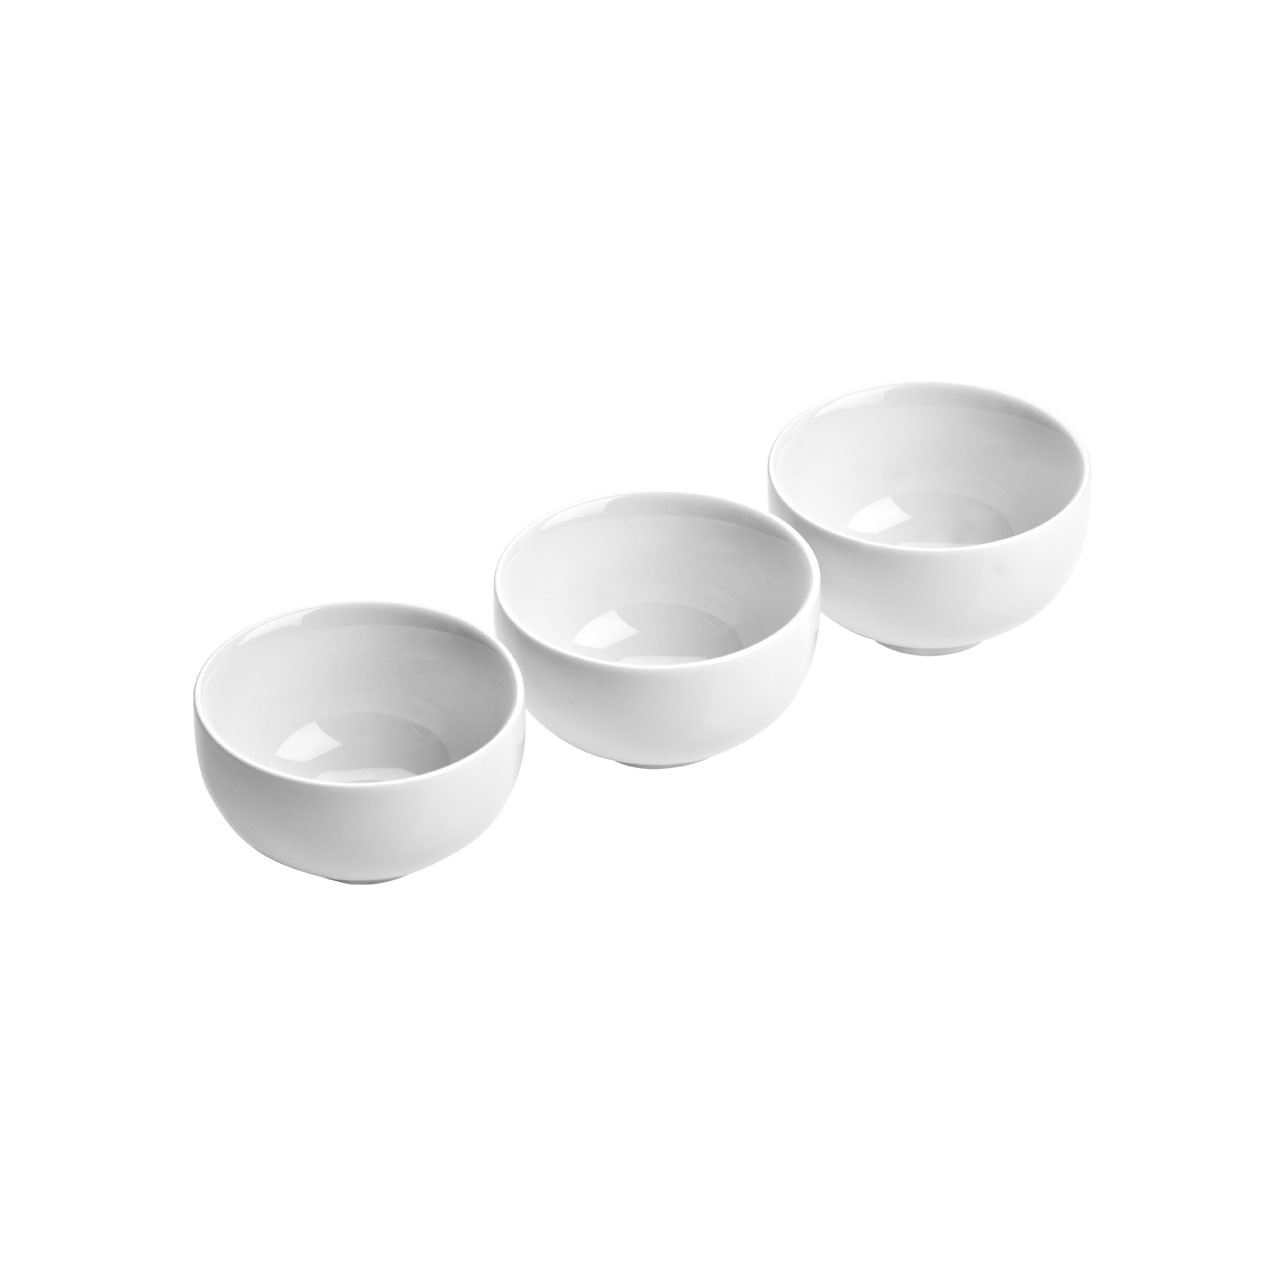 Round Entre Serving Dishes - White Porcelain, Set of 3